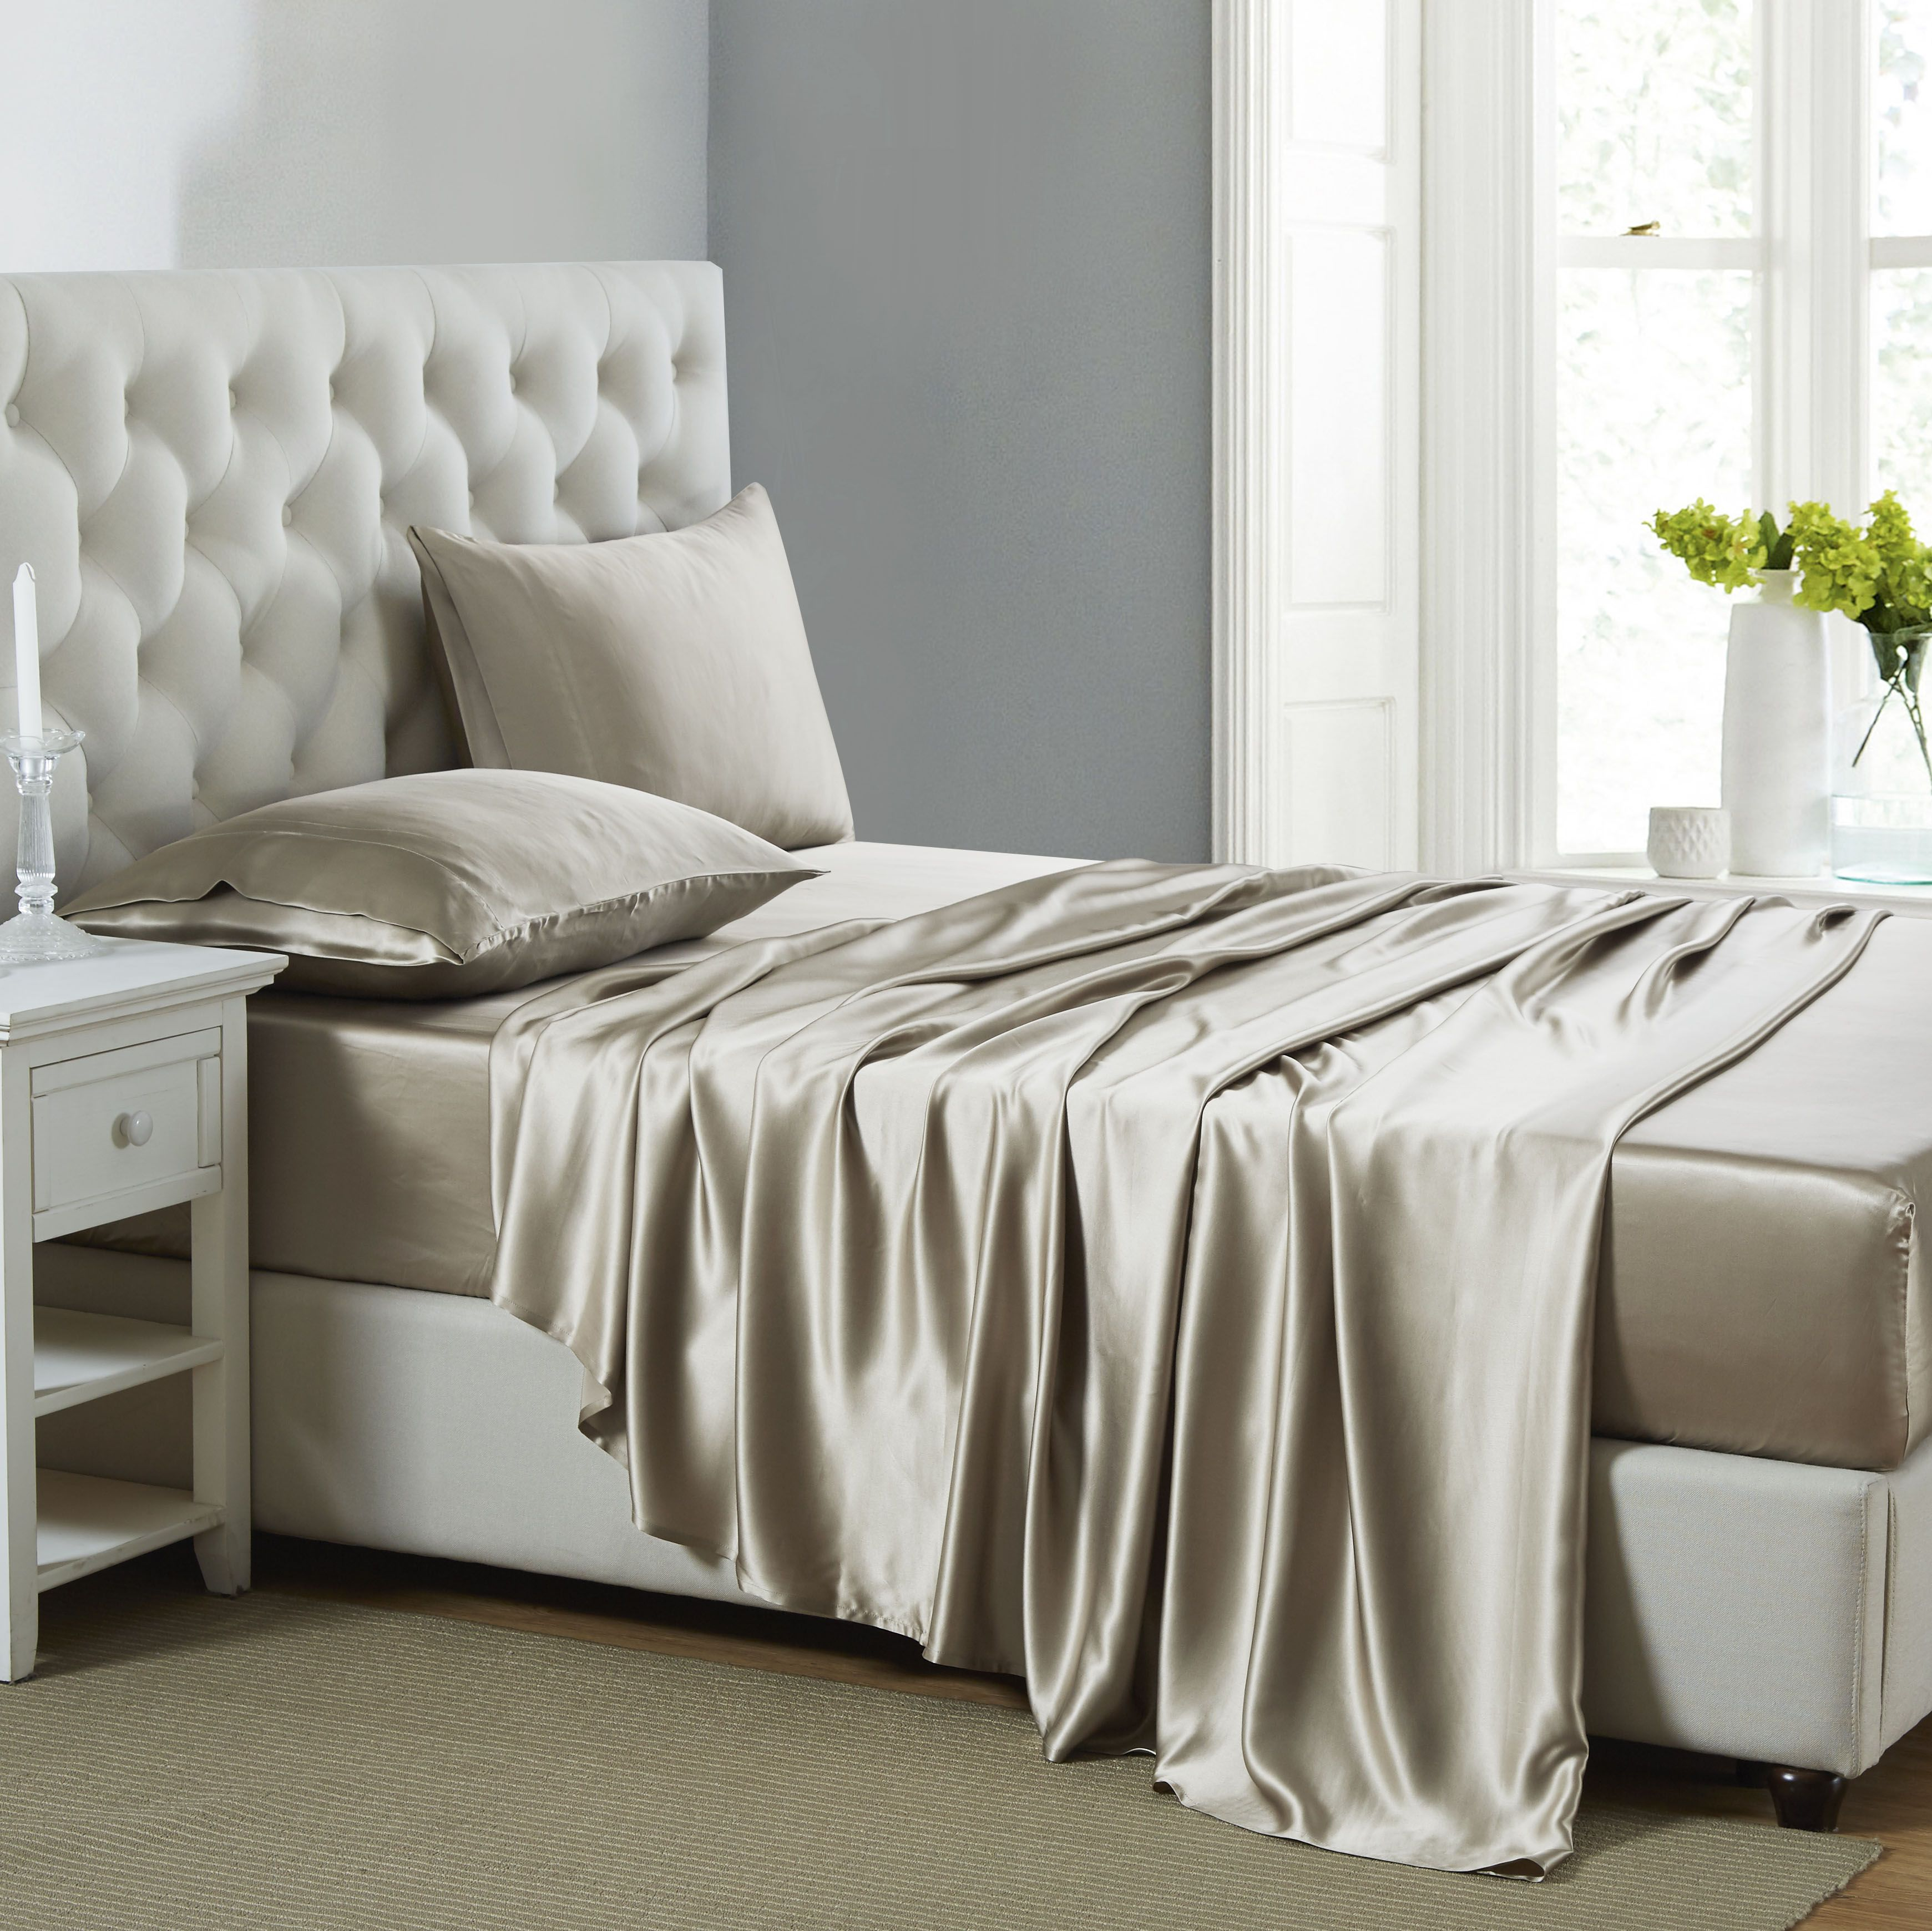 mulberry full red sheet with sheets size style linen sets bedding and of set silk bed comforter